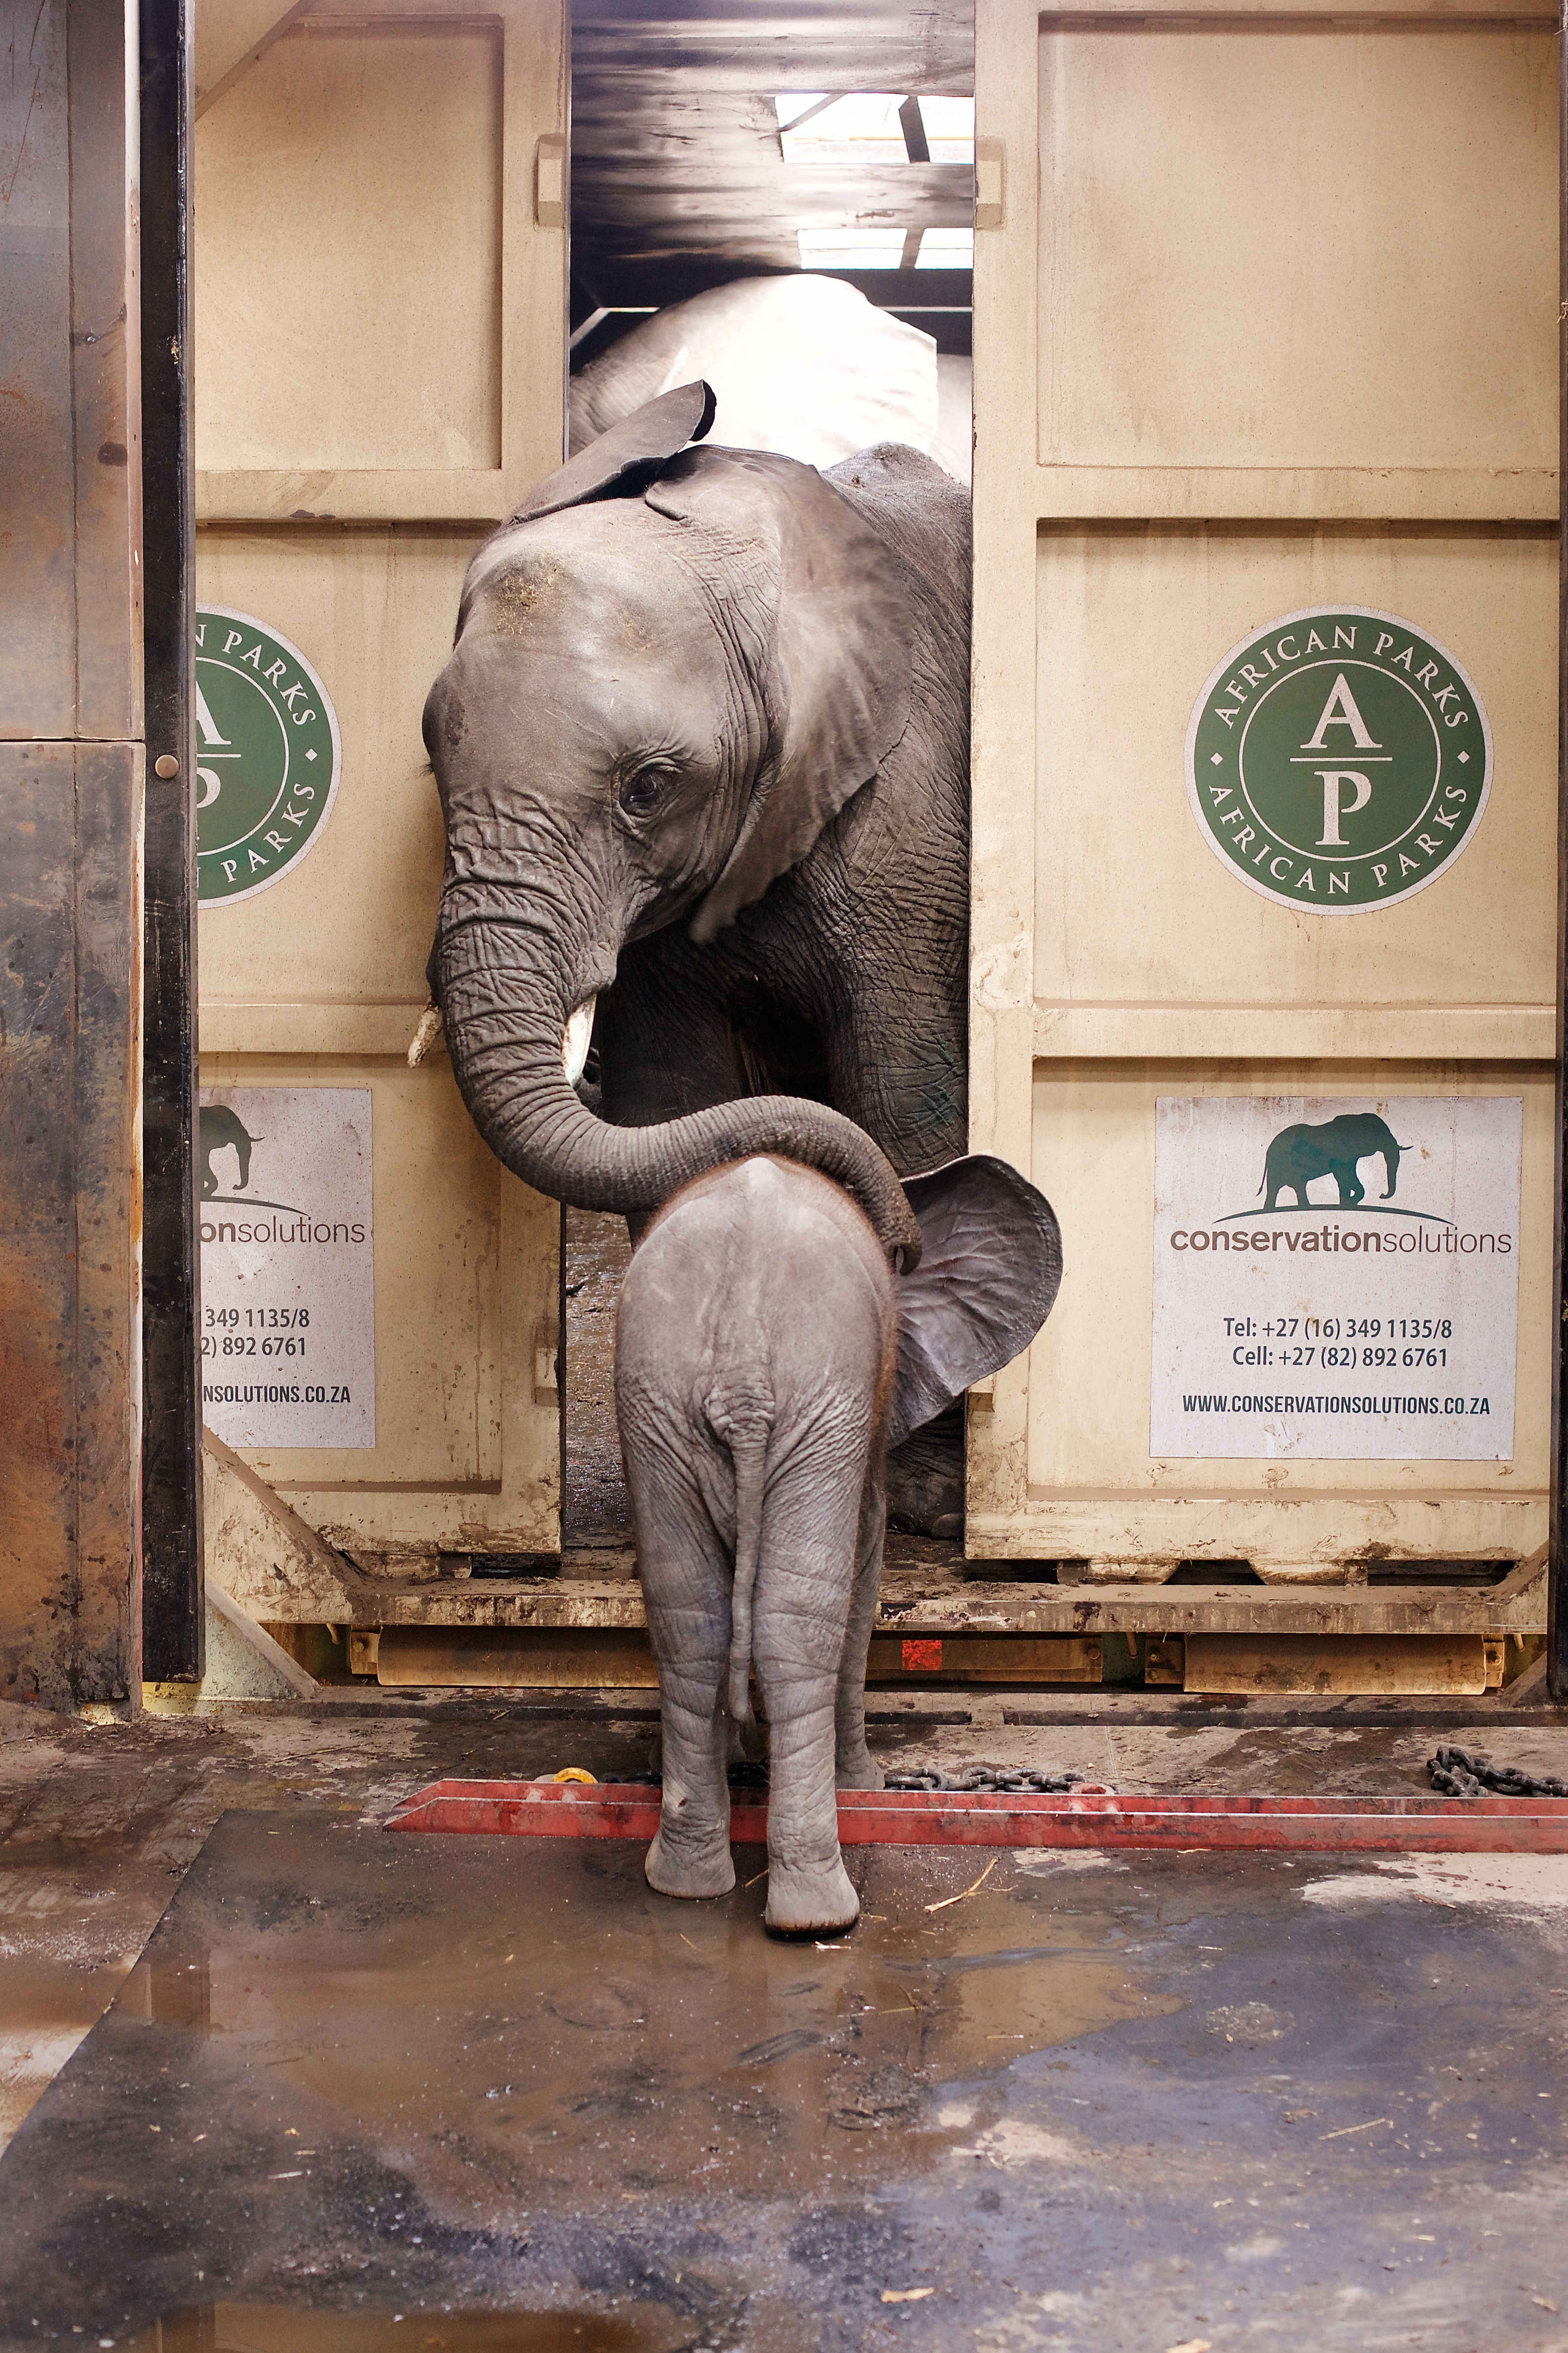 An elephant and a baby elephant were relocated by African Parks.